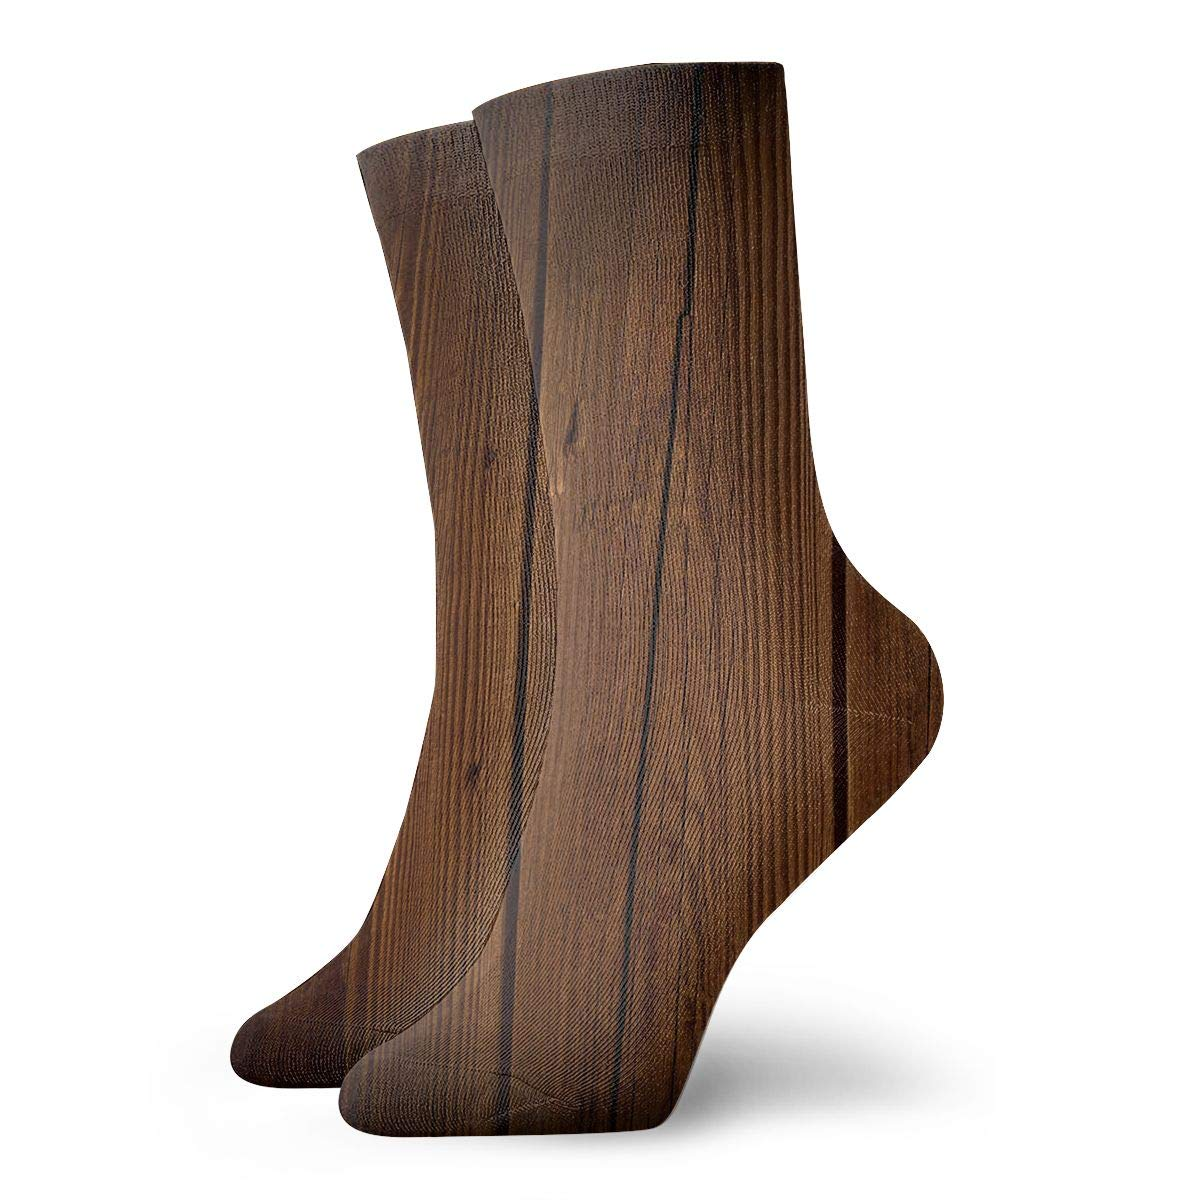 WEEDKEYCAT Brown Wooden Board Adult Short Socks Cotton Sports Socks for Mens Womens Yoga Hiking Cycling Running Soccer Sports